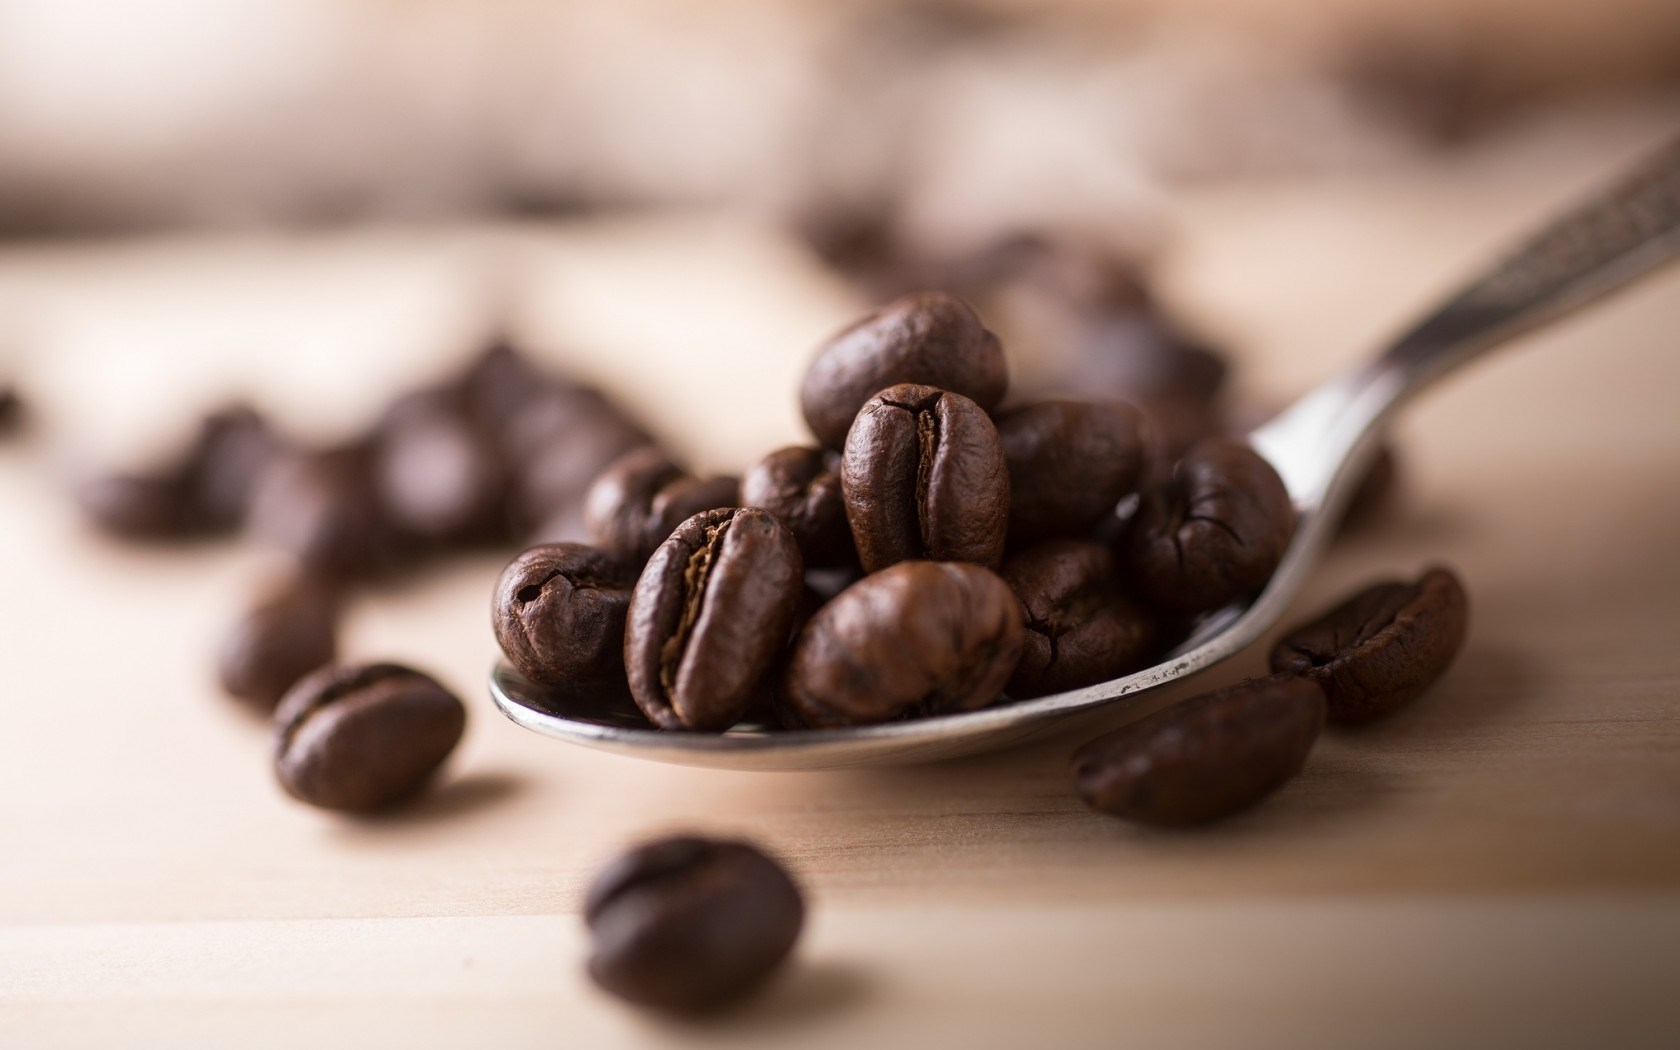 coffee beans on spoon wallpaper hd 42422